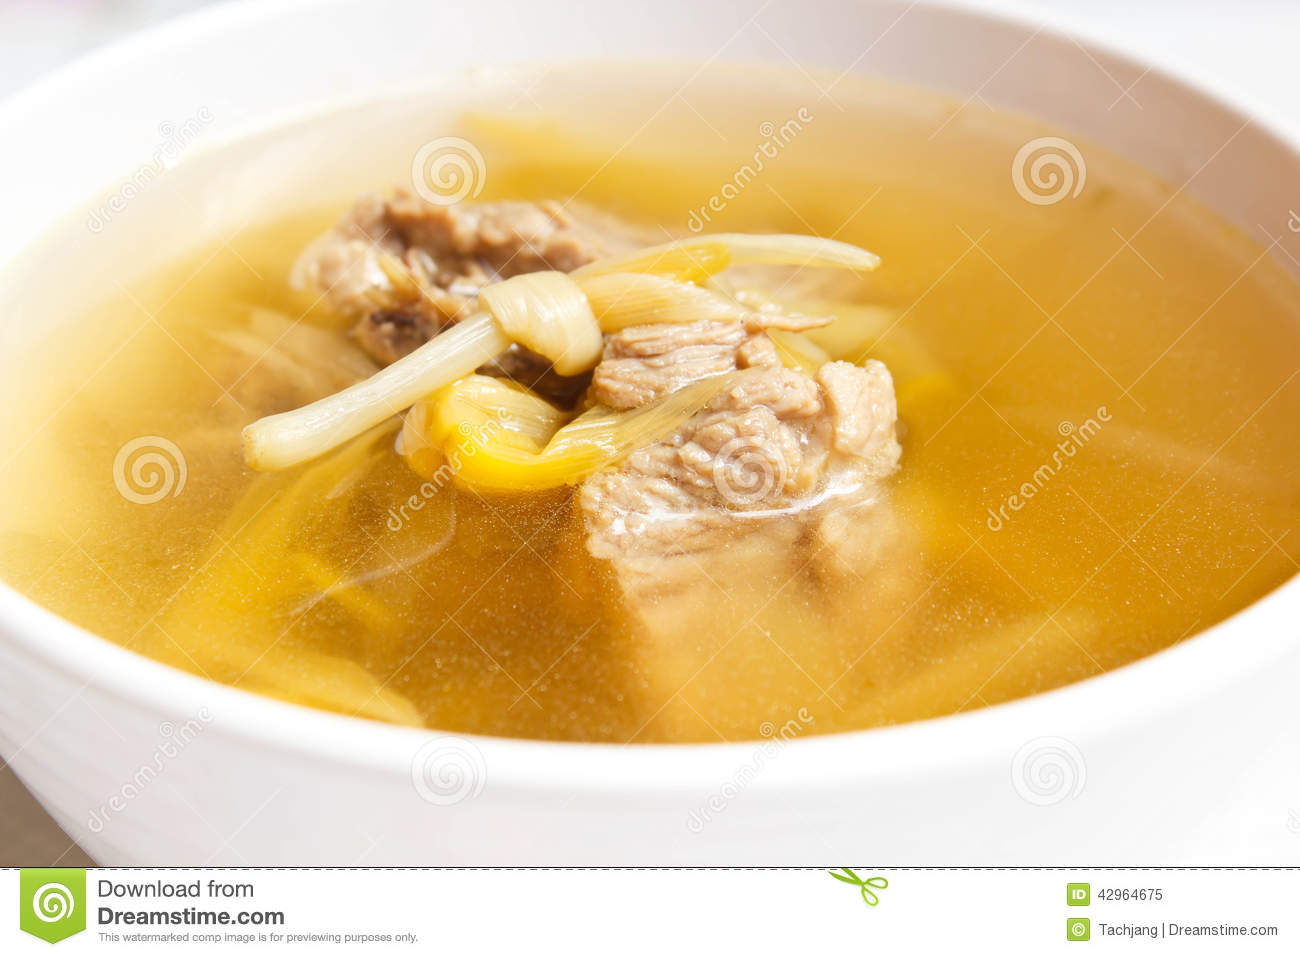 Lily flower and sparerib soup stock image image of asian meat royalty free stock photo izmirmasajfo